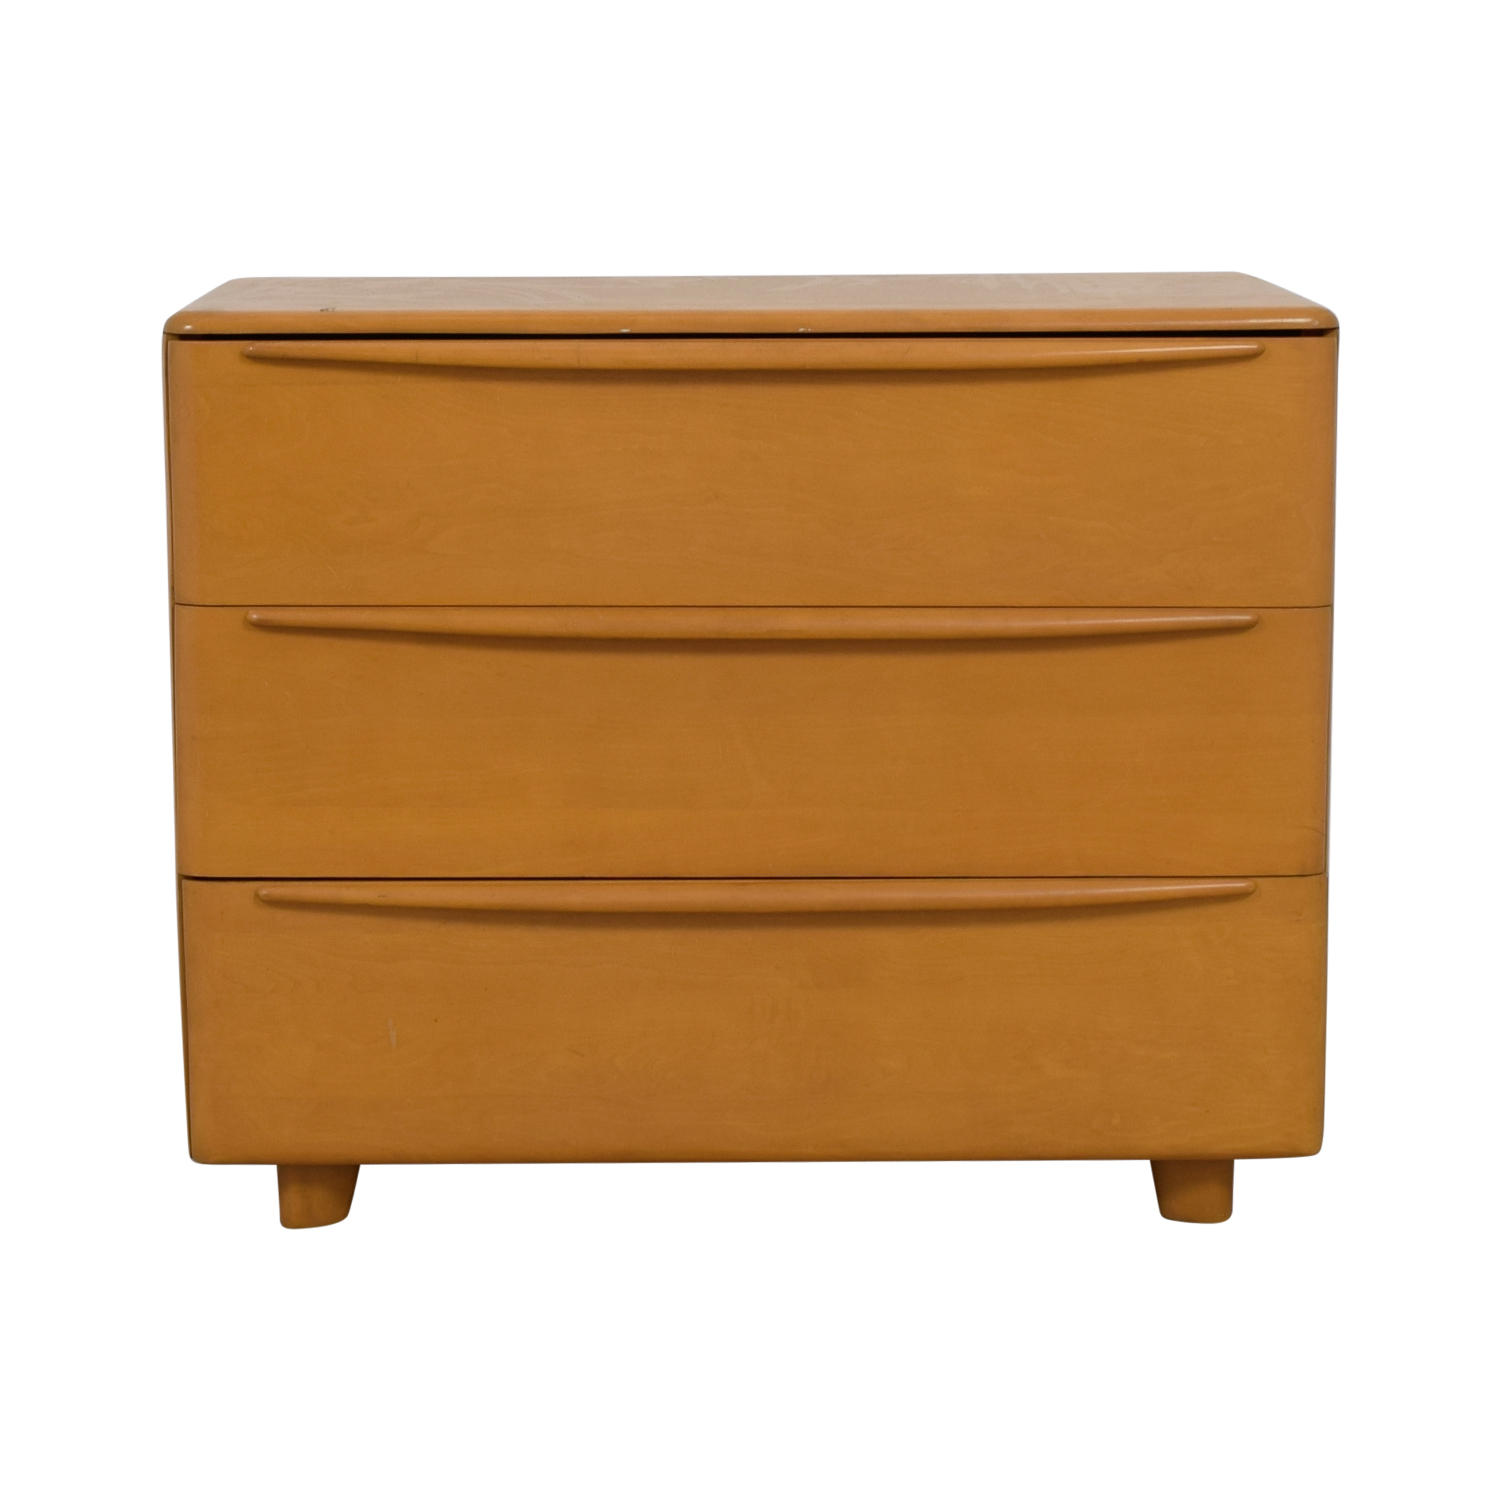 shop Heywood-Wakefield Encore Wheat Three-Drawer Dresser Heywood-Wakefield